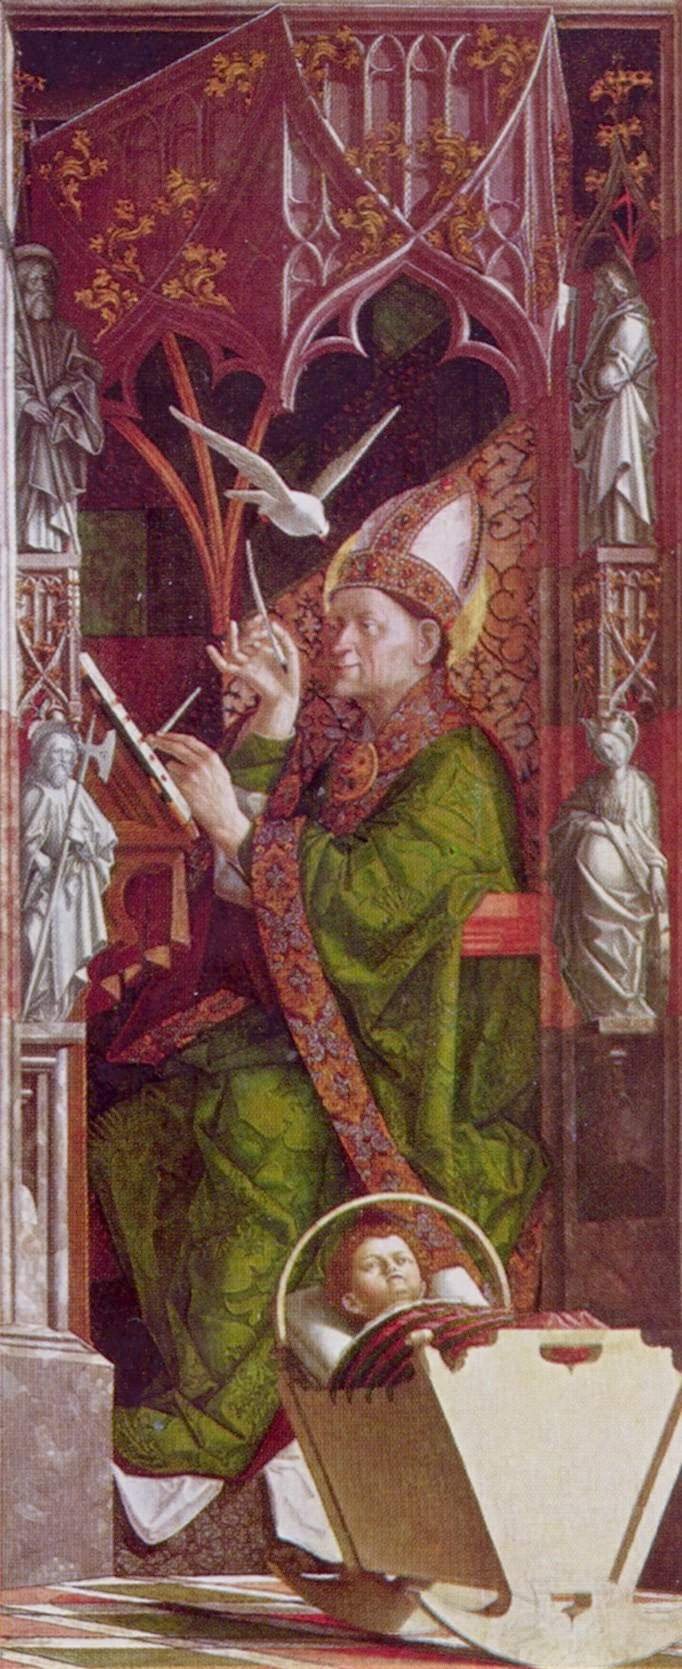 Michael Paher. Altarpiece of the Church fathers, the inner side of the right wing. St. Ambrose